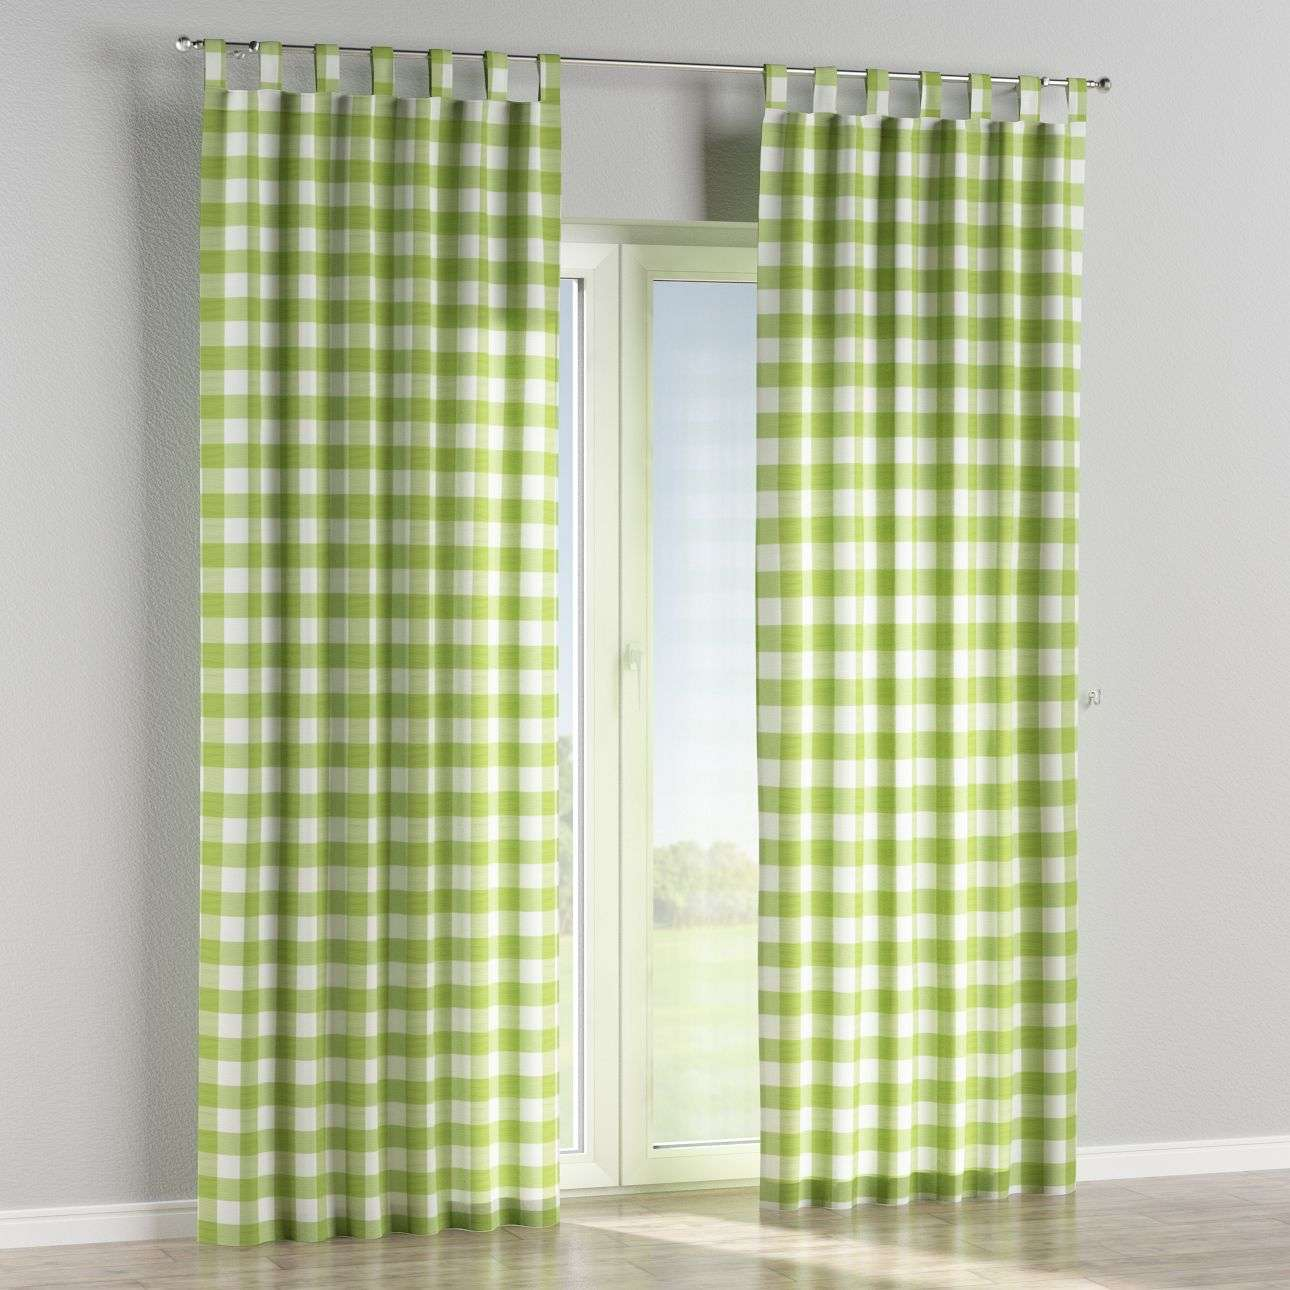 Tab top curtains in collection Quadro, fabric: 136-36